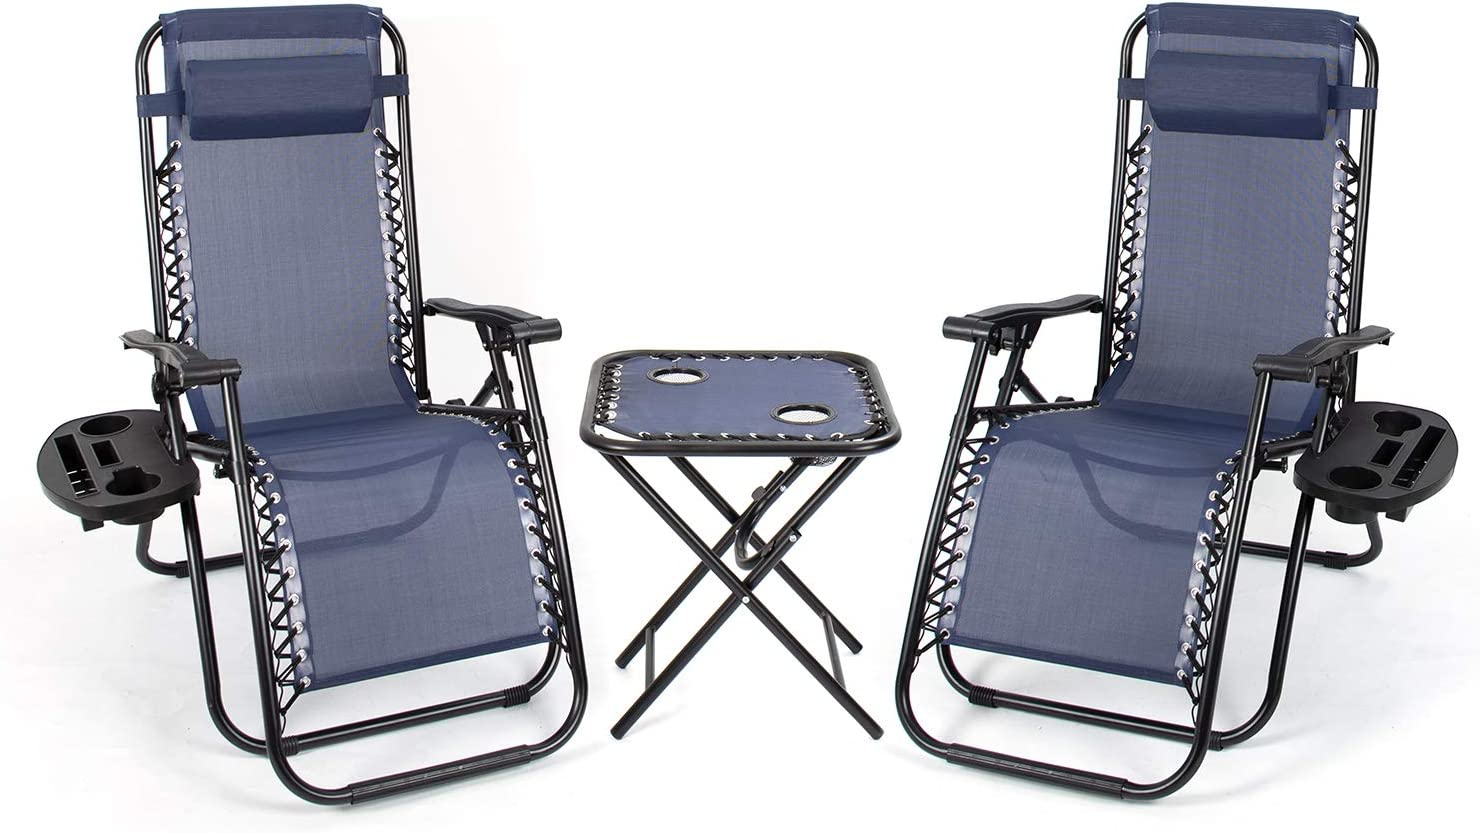 Flamaker Zero Gravity Chairs Outdoor Folding Max Super special price 63% OFF Adjustabl Recliners